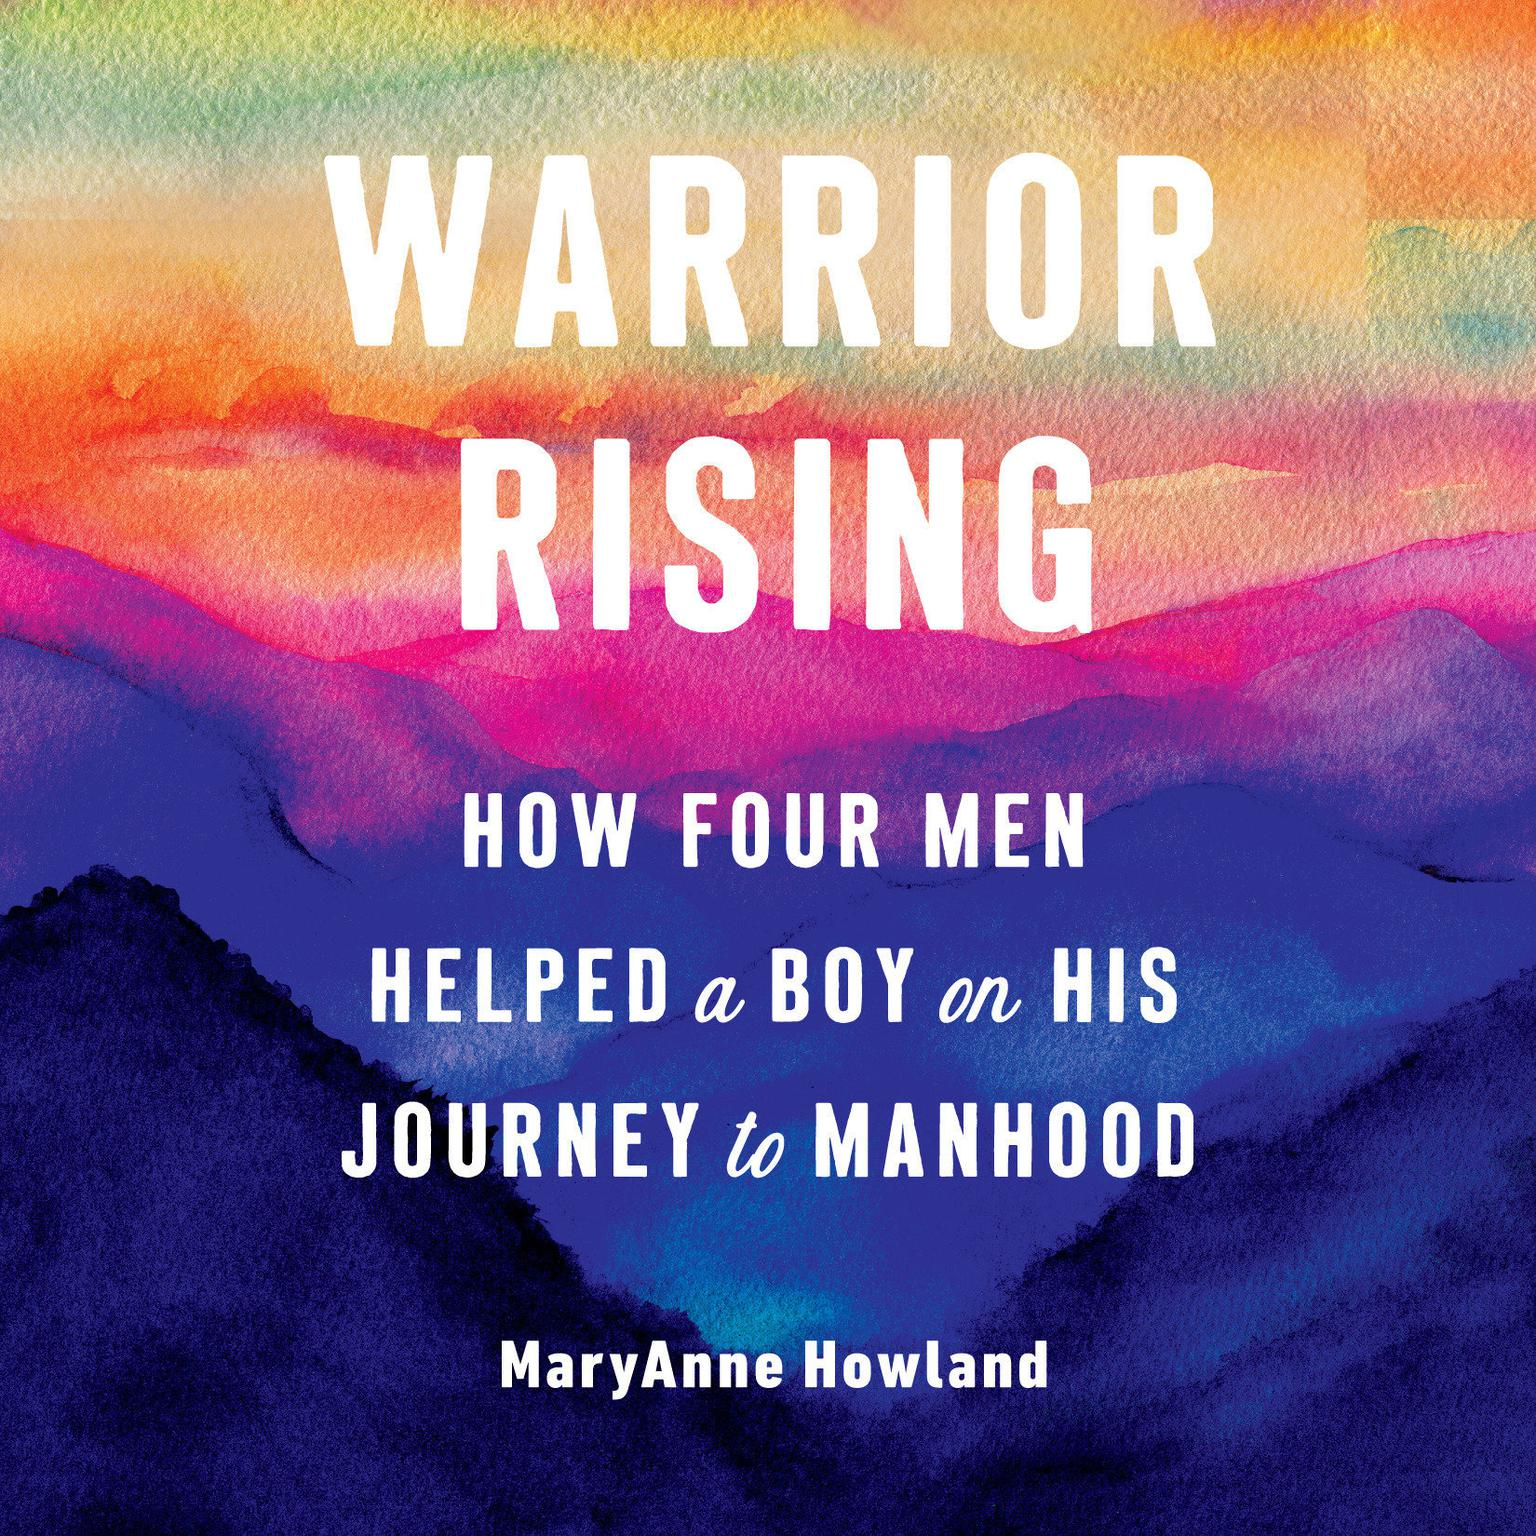 Printable Warrior Rising: How Four Men Helped a Boy on his Journey to Manhood Audiobook Cover Art